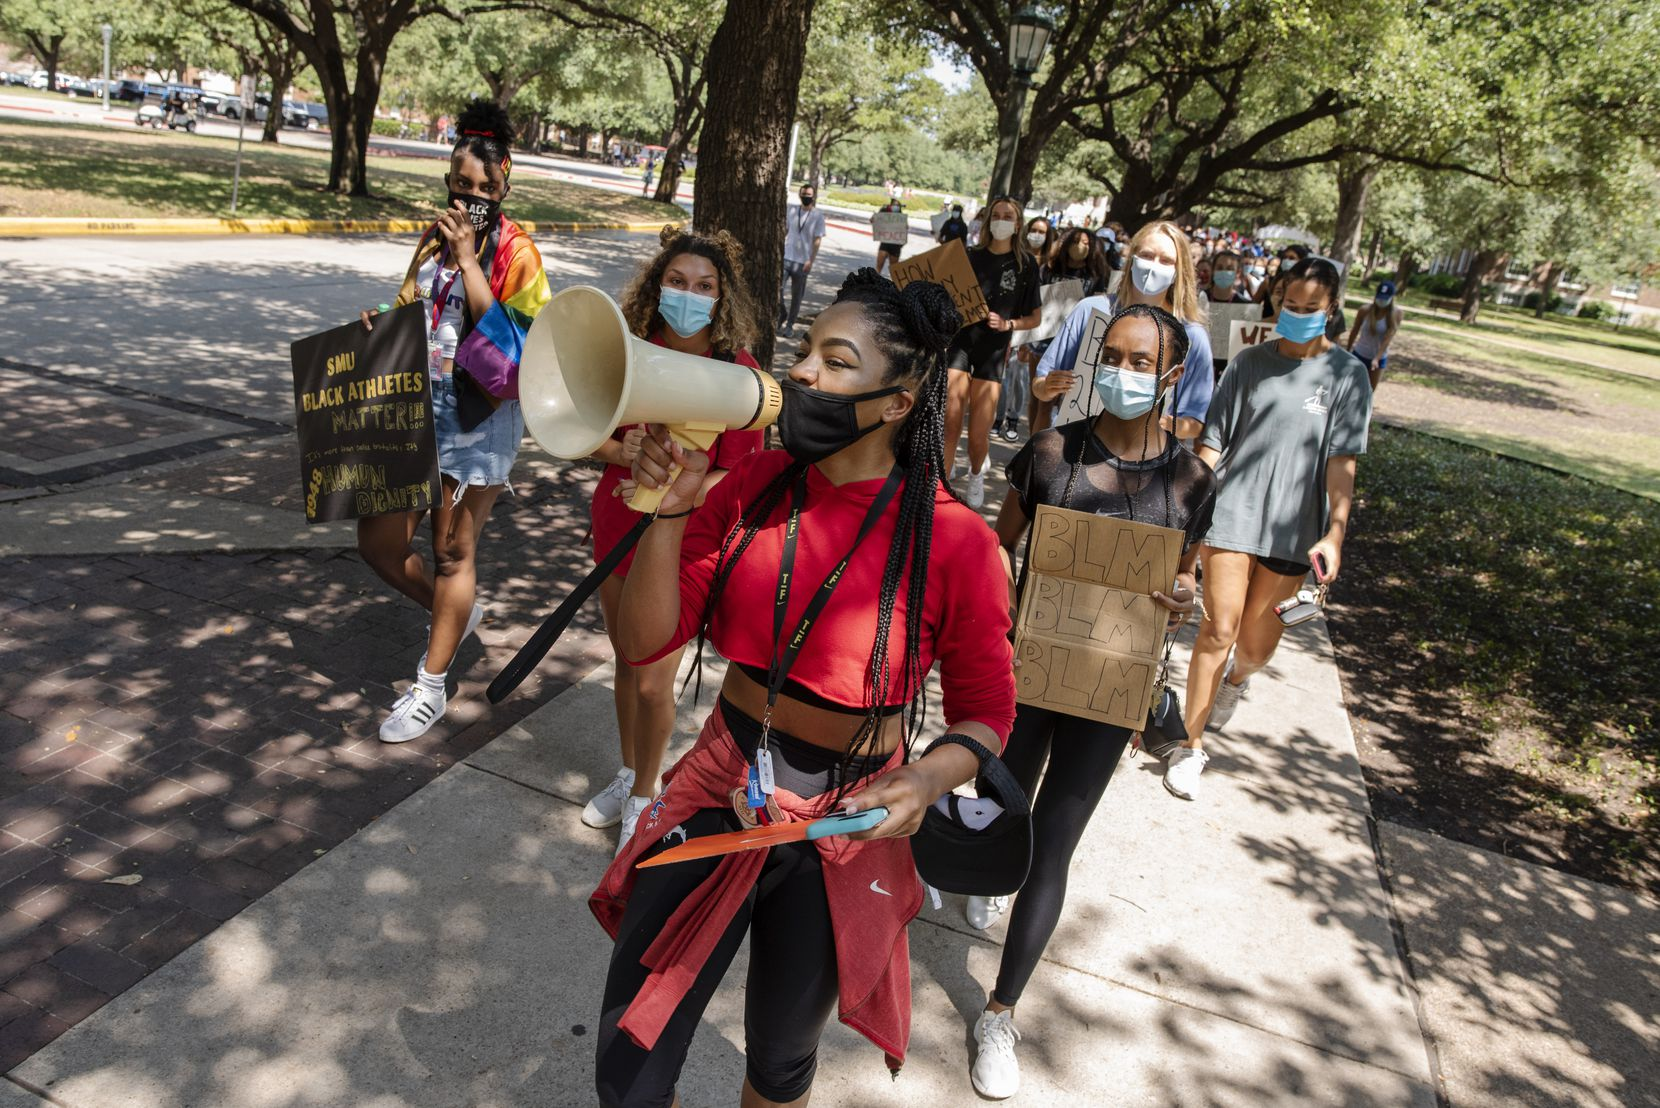 """Track and field athlete Brooke Shepherd, center, uses a megaphone to chant, """"no justice! No peace!"""" during a Black Lives Matter movement march conducted by SMU Black student athletes on the campus in Dallas, Aug. 28, 2020. (Ben Torres/Special Contributor)"""